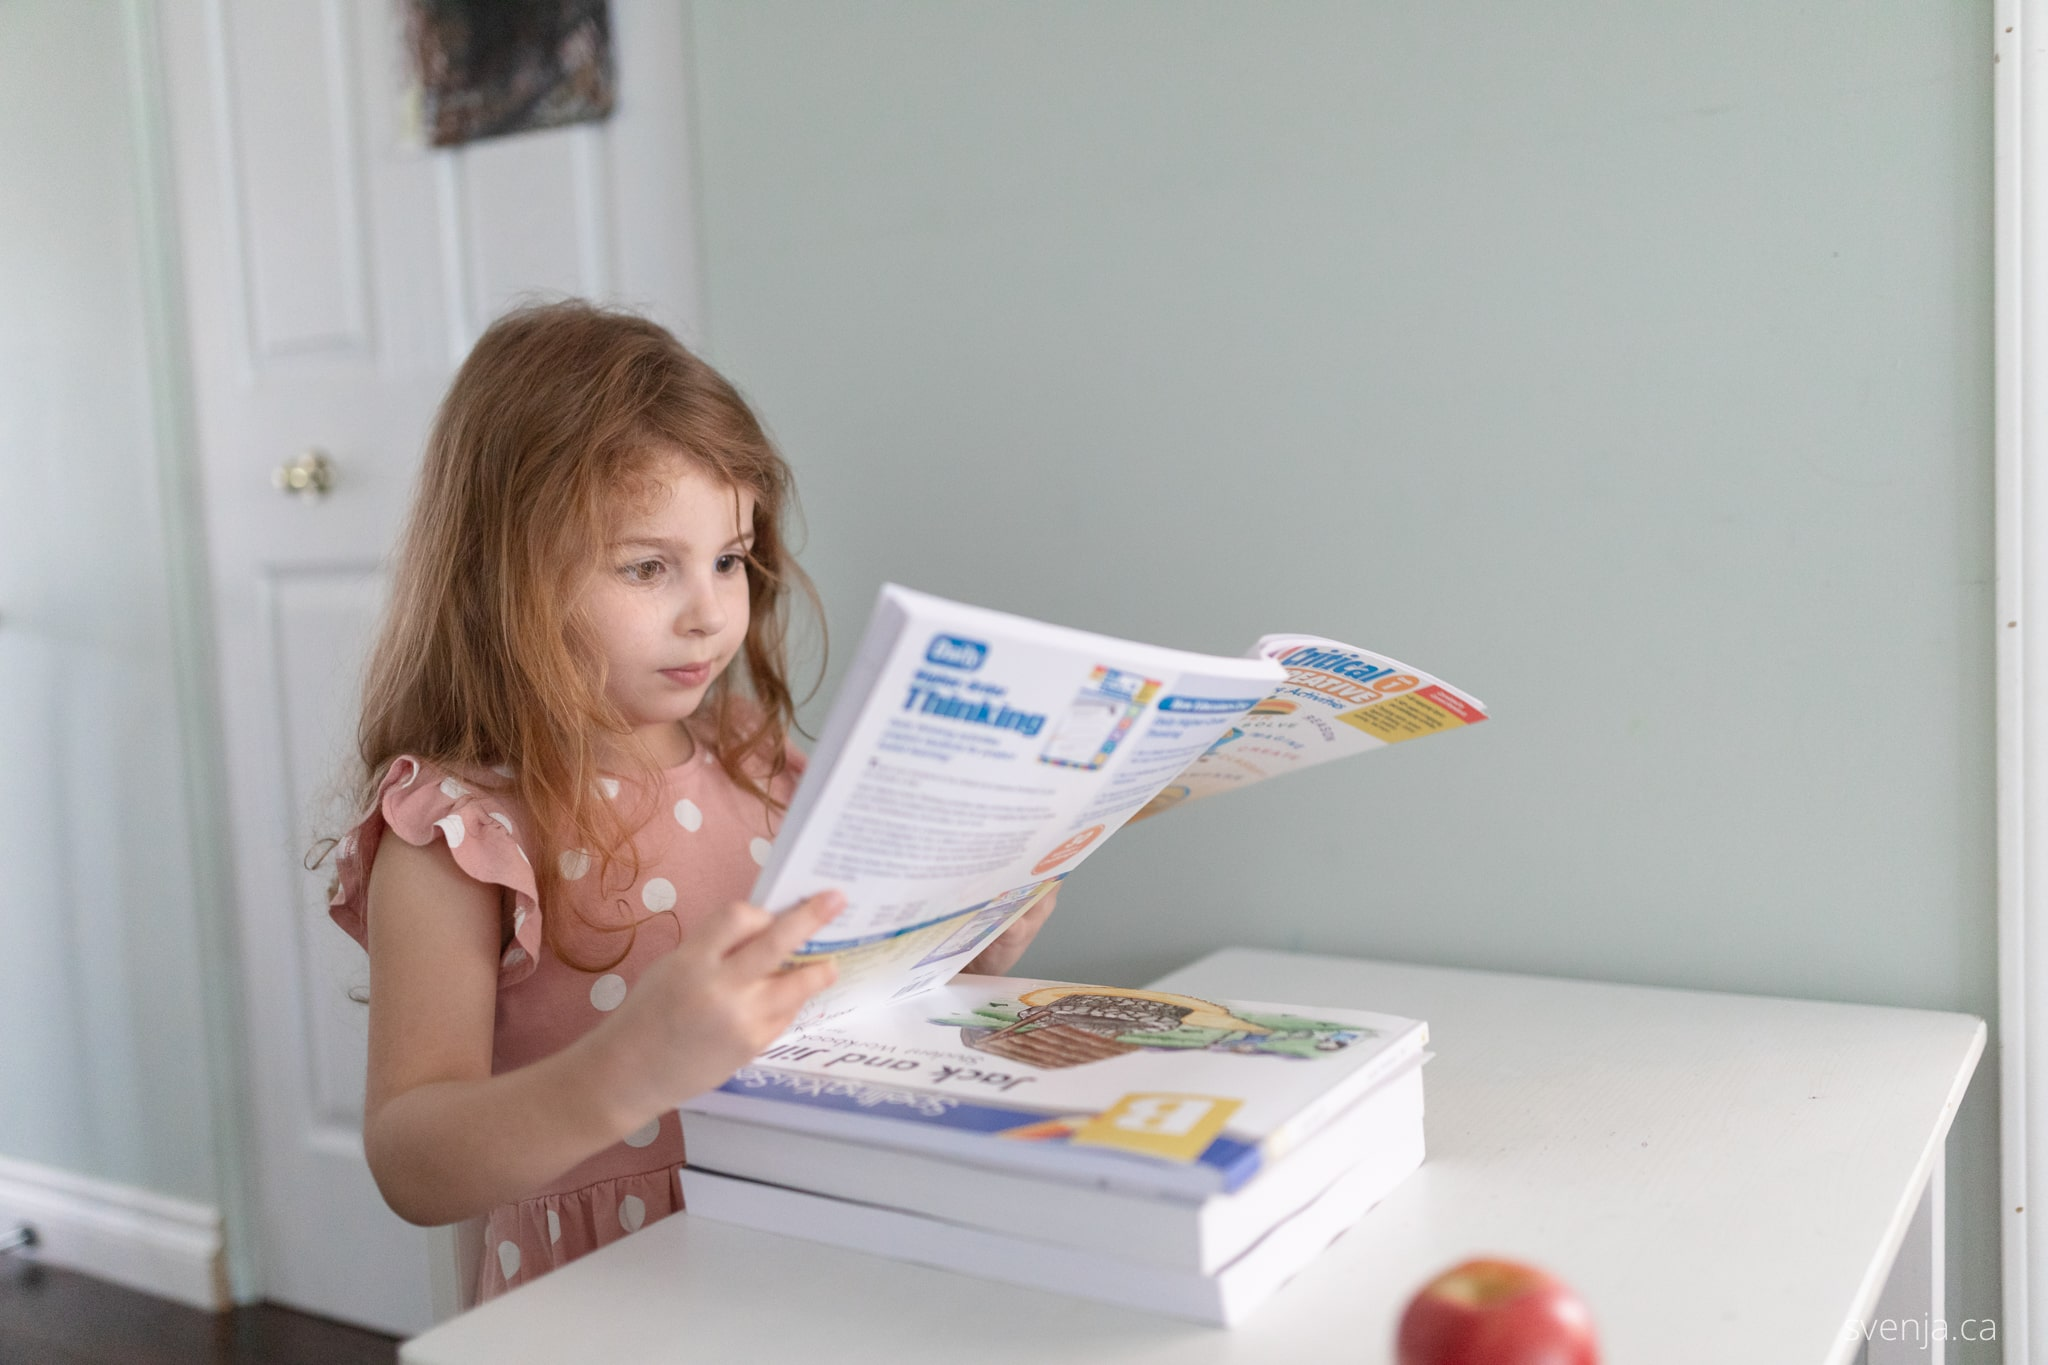 a young girl looks over a work book while seated at a desk